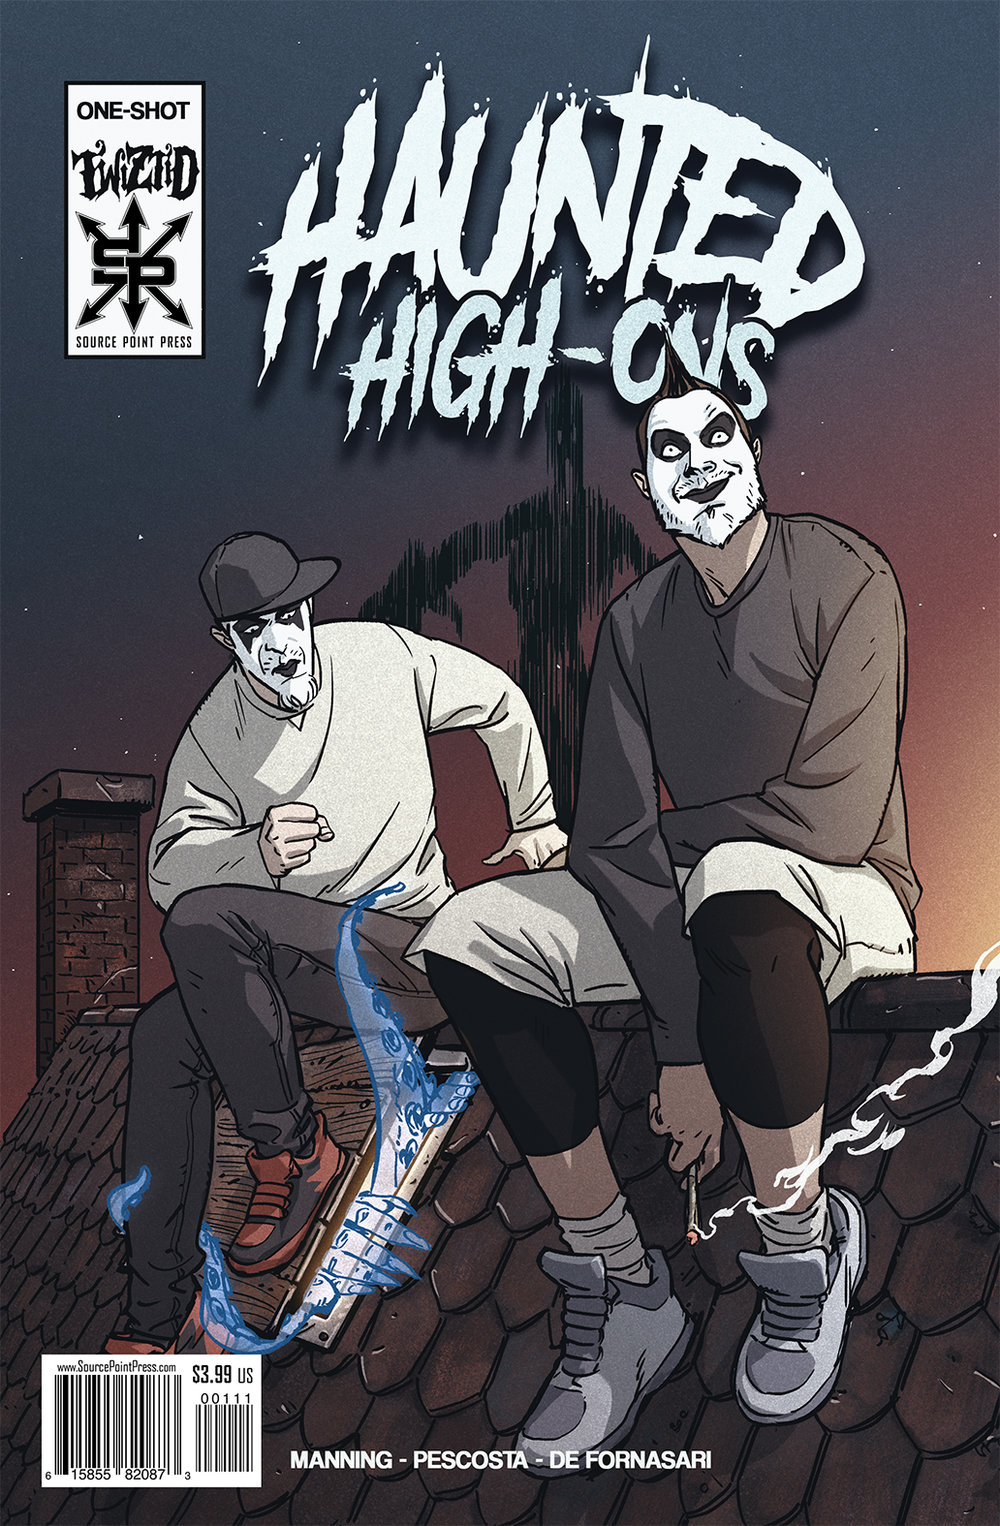 - Twiztid, composed of Jamie Madrox and Monoxide, is a rap group based out of Detroit, MI, with 11 studio albums to-date, and a 12th coming in 2018 from their label Majik Ninja Entertainment. Haunted High-Ons is a one-shot comic story featuring the duo having carved out a comfortable side-gig for themselves as fake ghost hunters… but what happens when a routine house call yields not only a ghost, but a killer demon to boot? Hijinks and horror, of course!